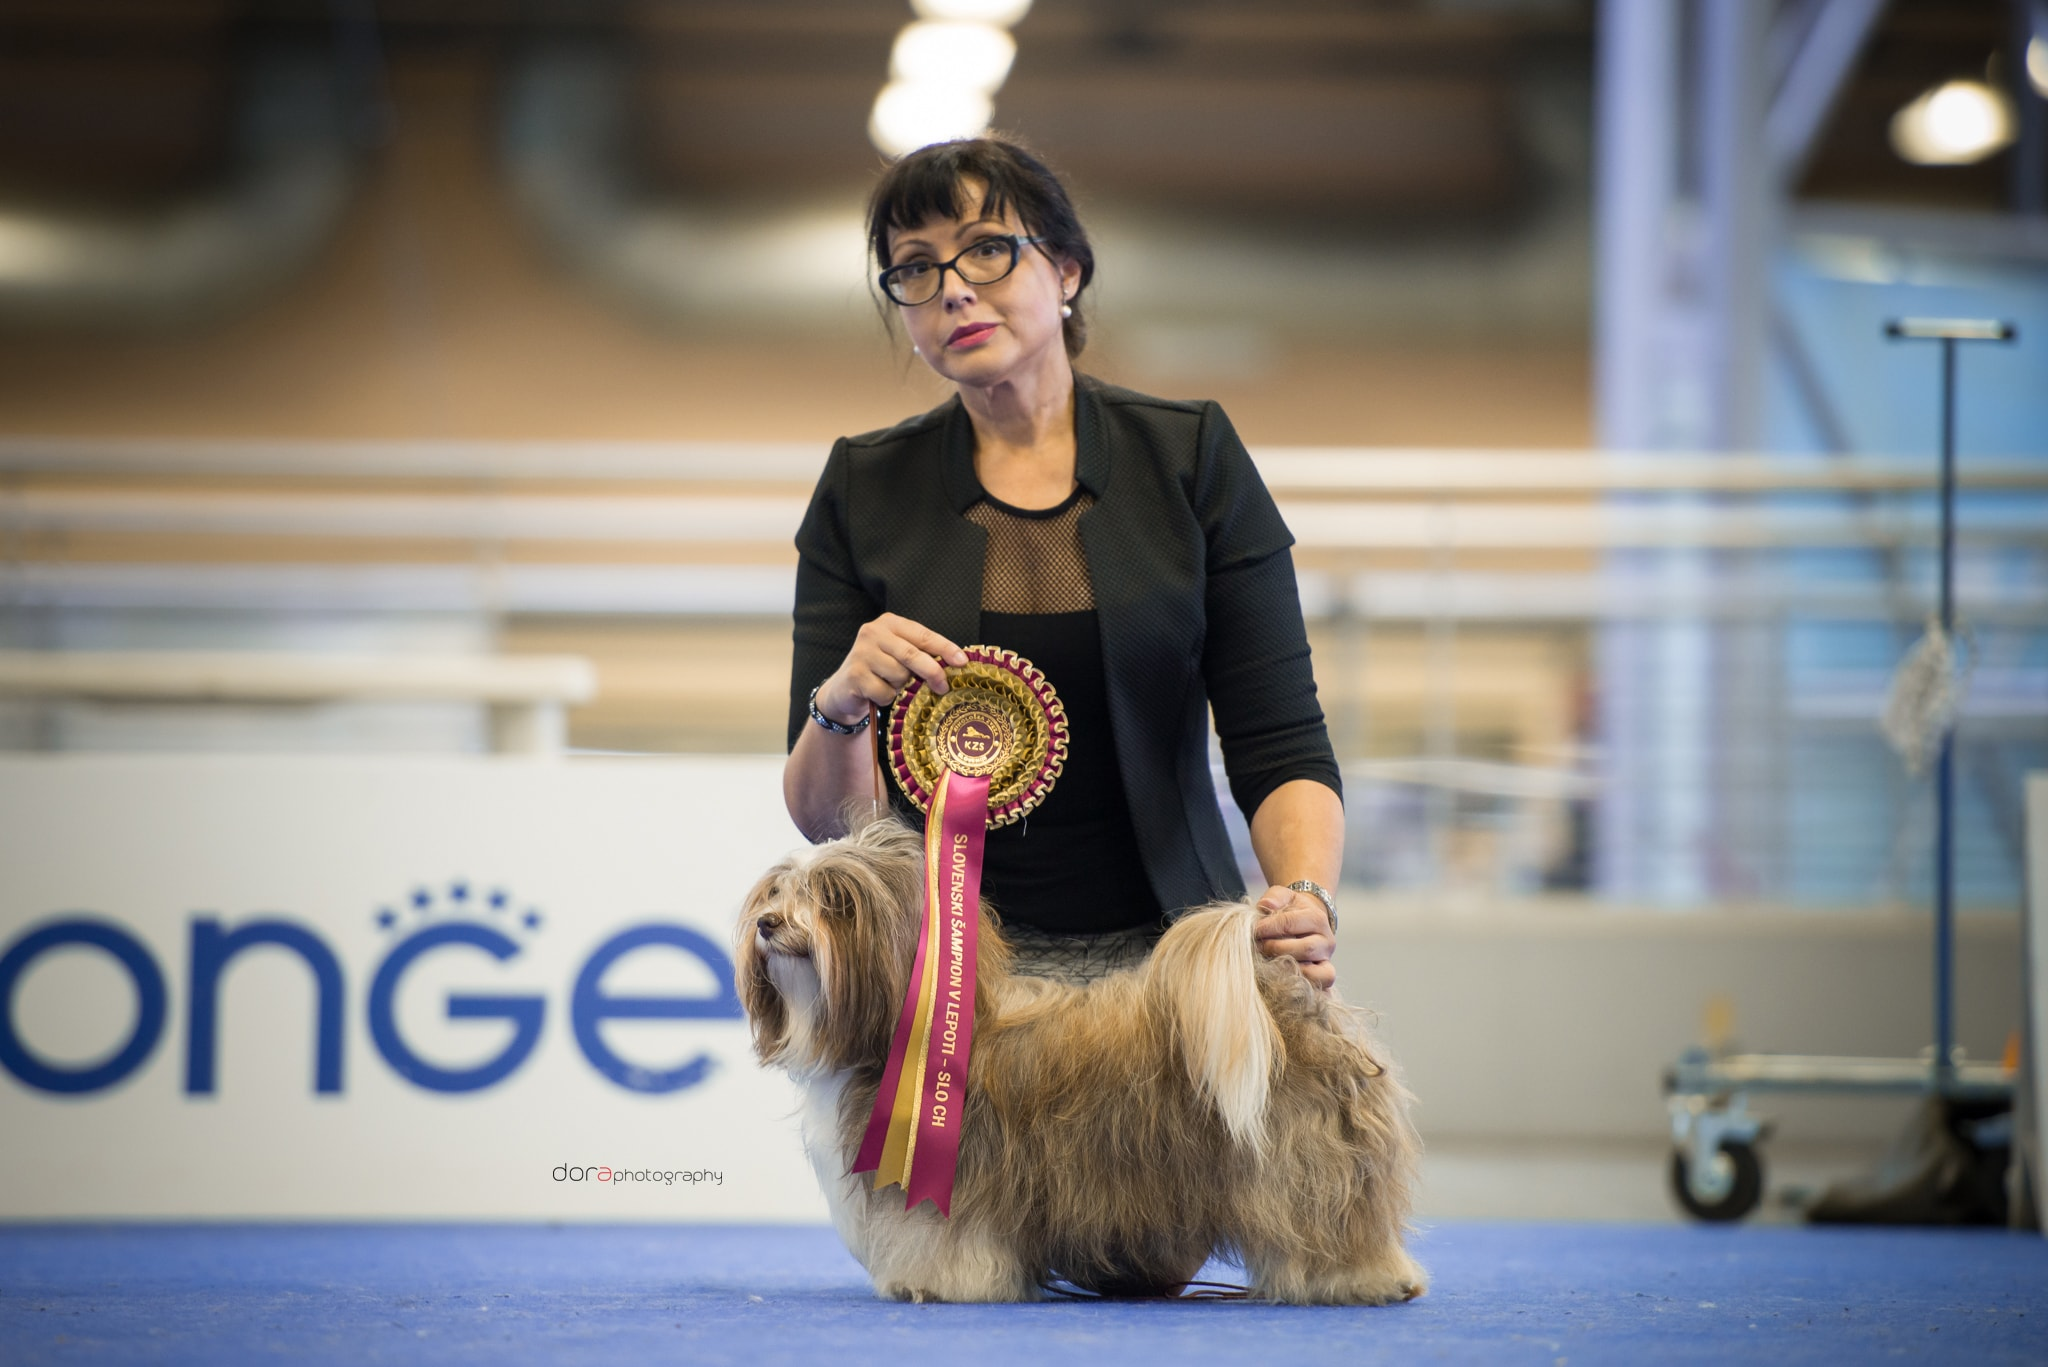 Two SLOVENIAN BEAUTY CHAMPIONS – CH. SLO in Amores de Clementis Kennel